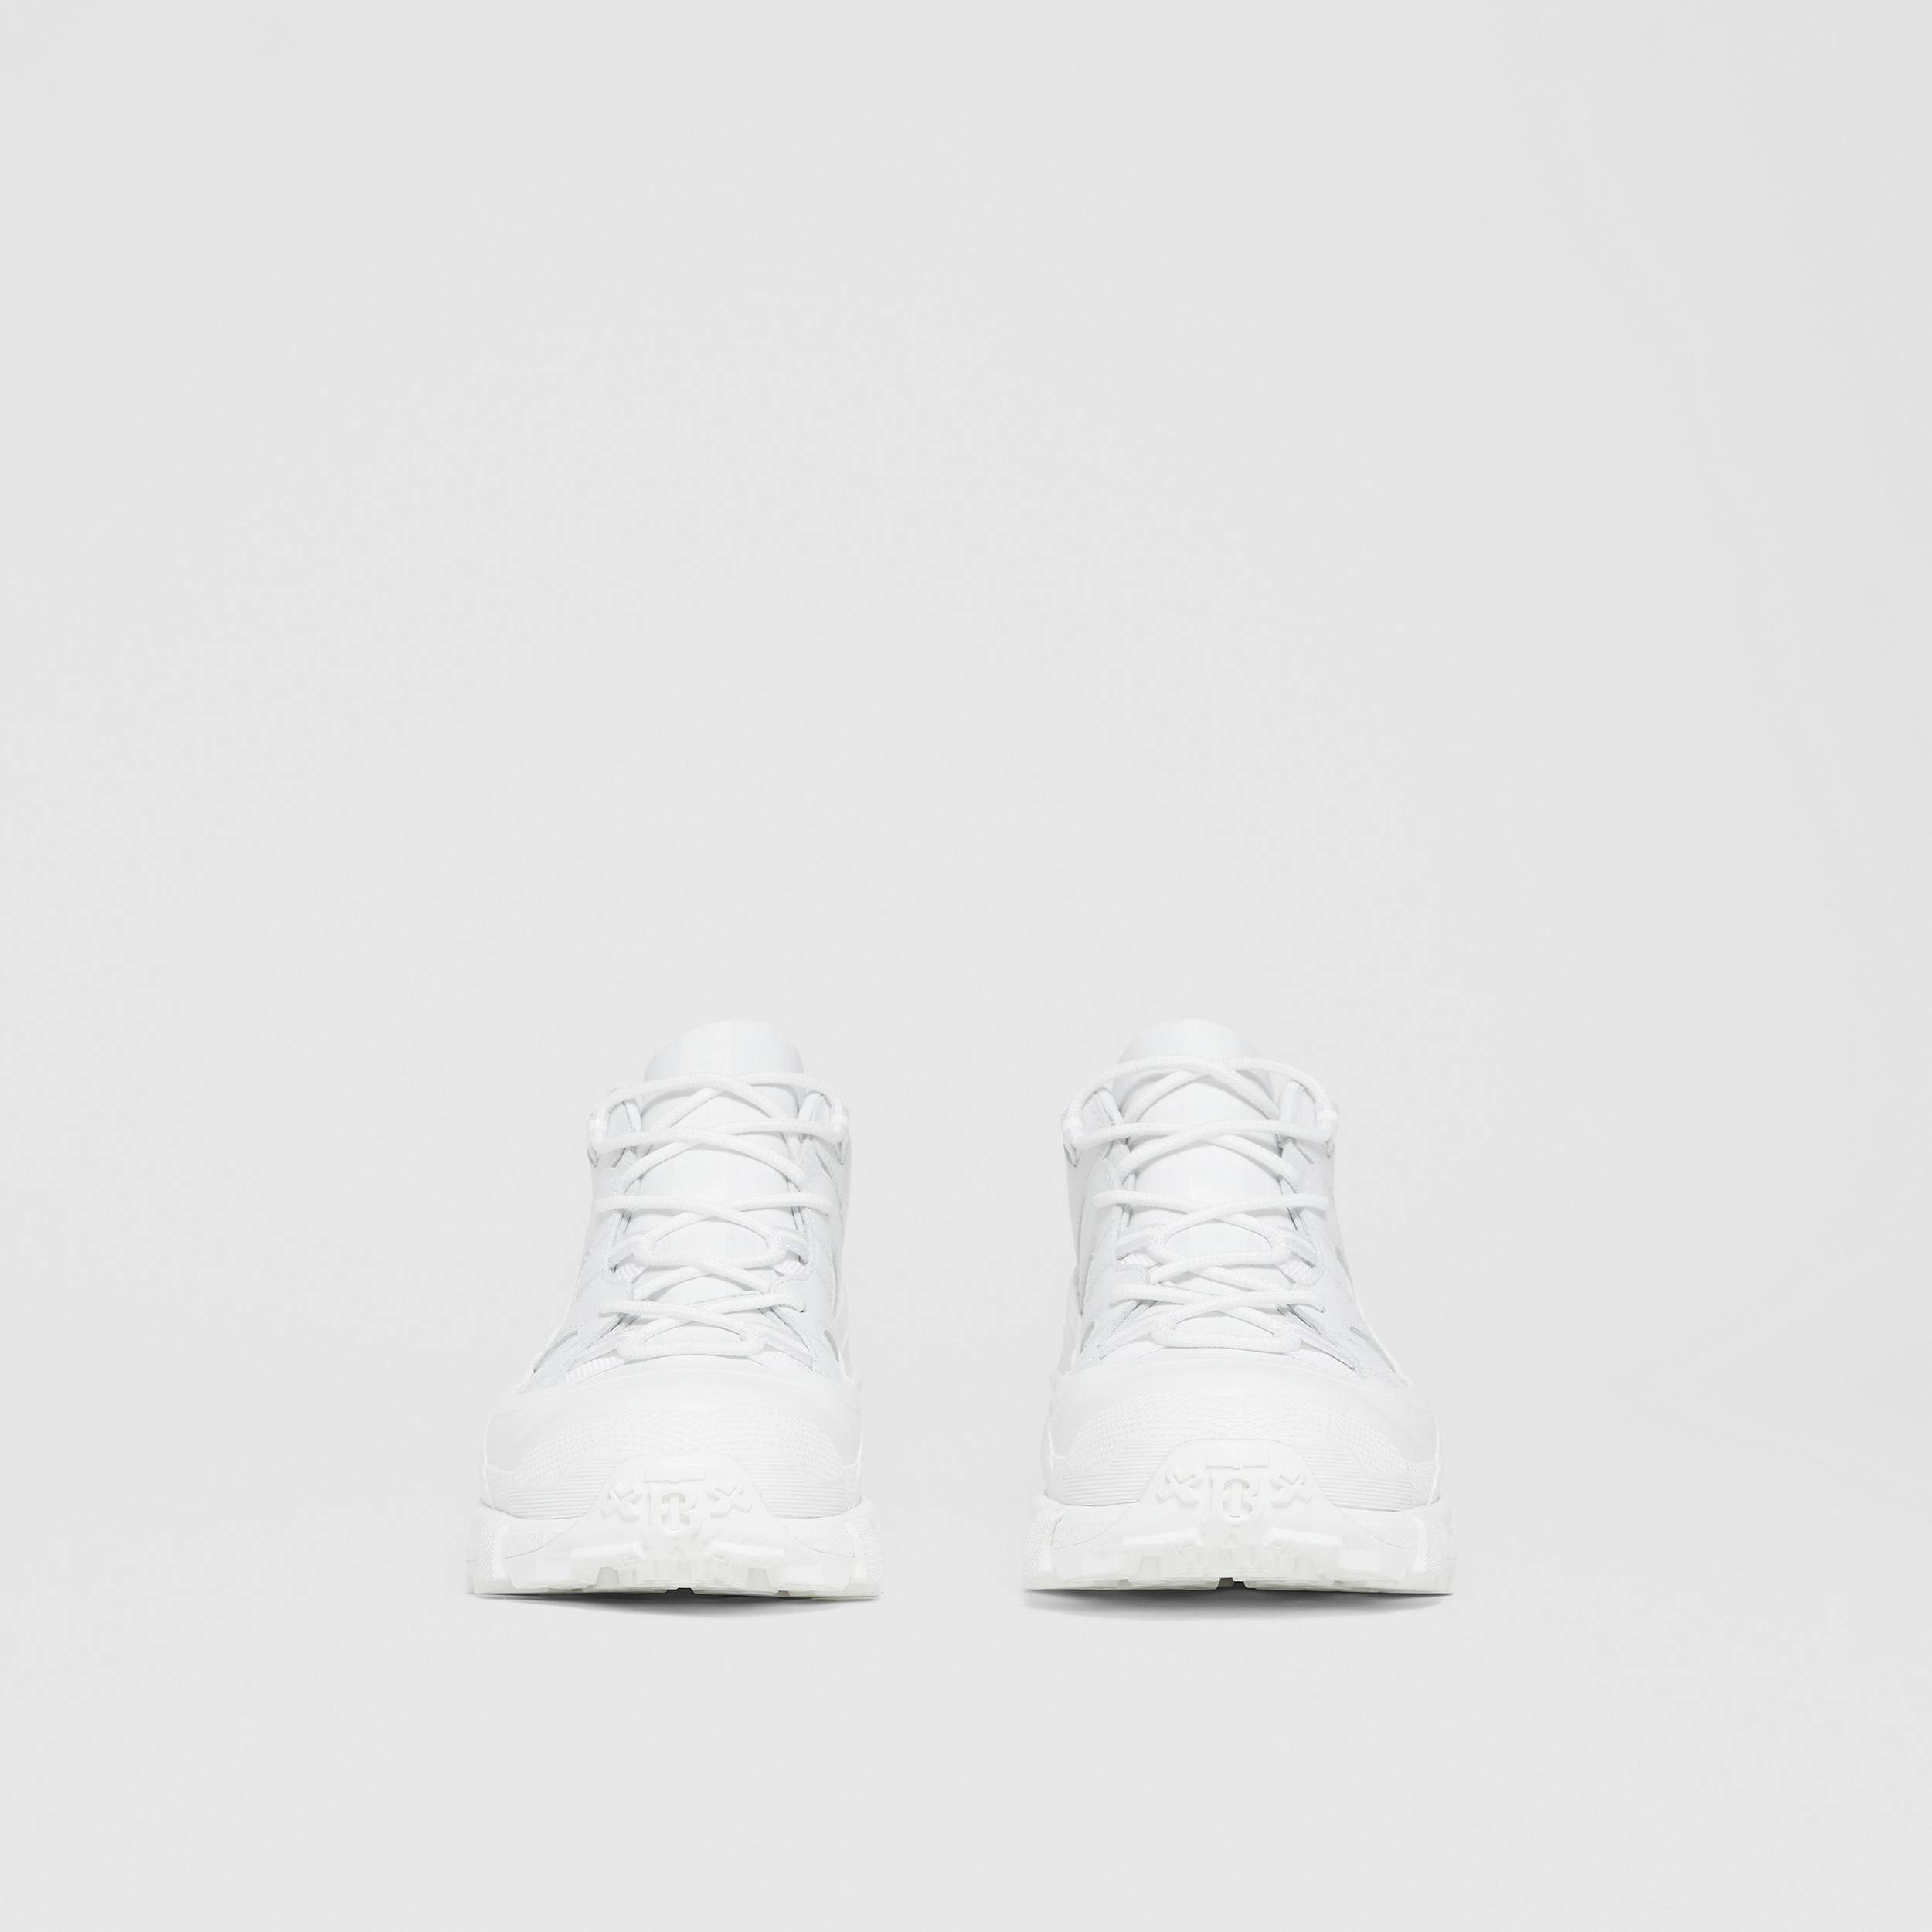 Leather Arthur Sneakers in White - Women | Burberry - 4